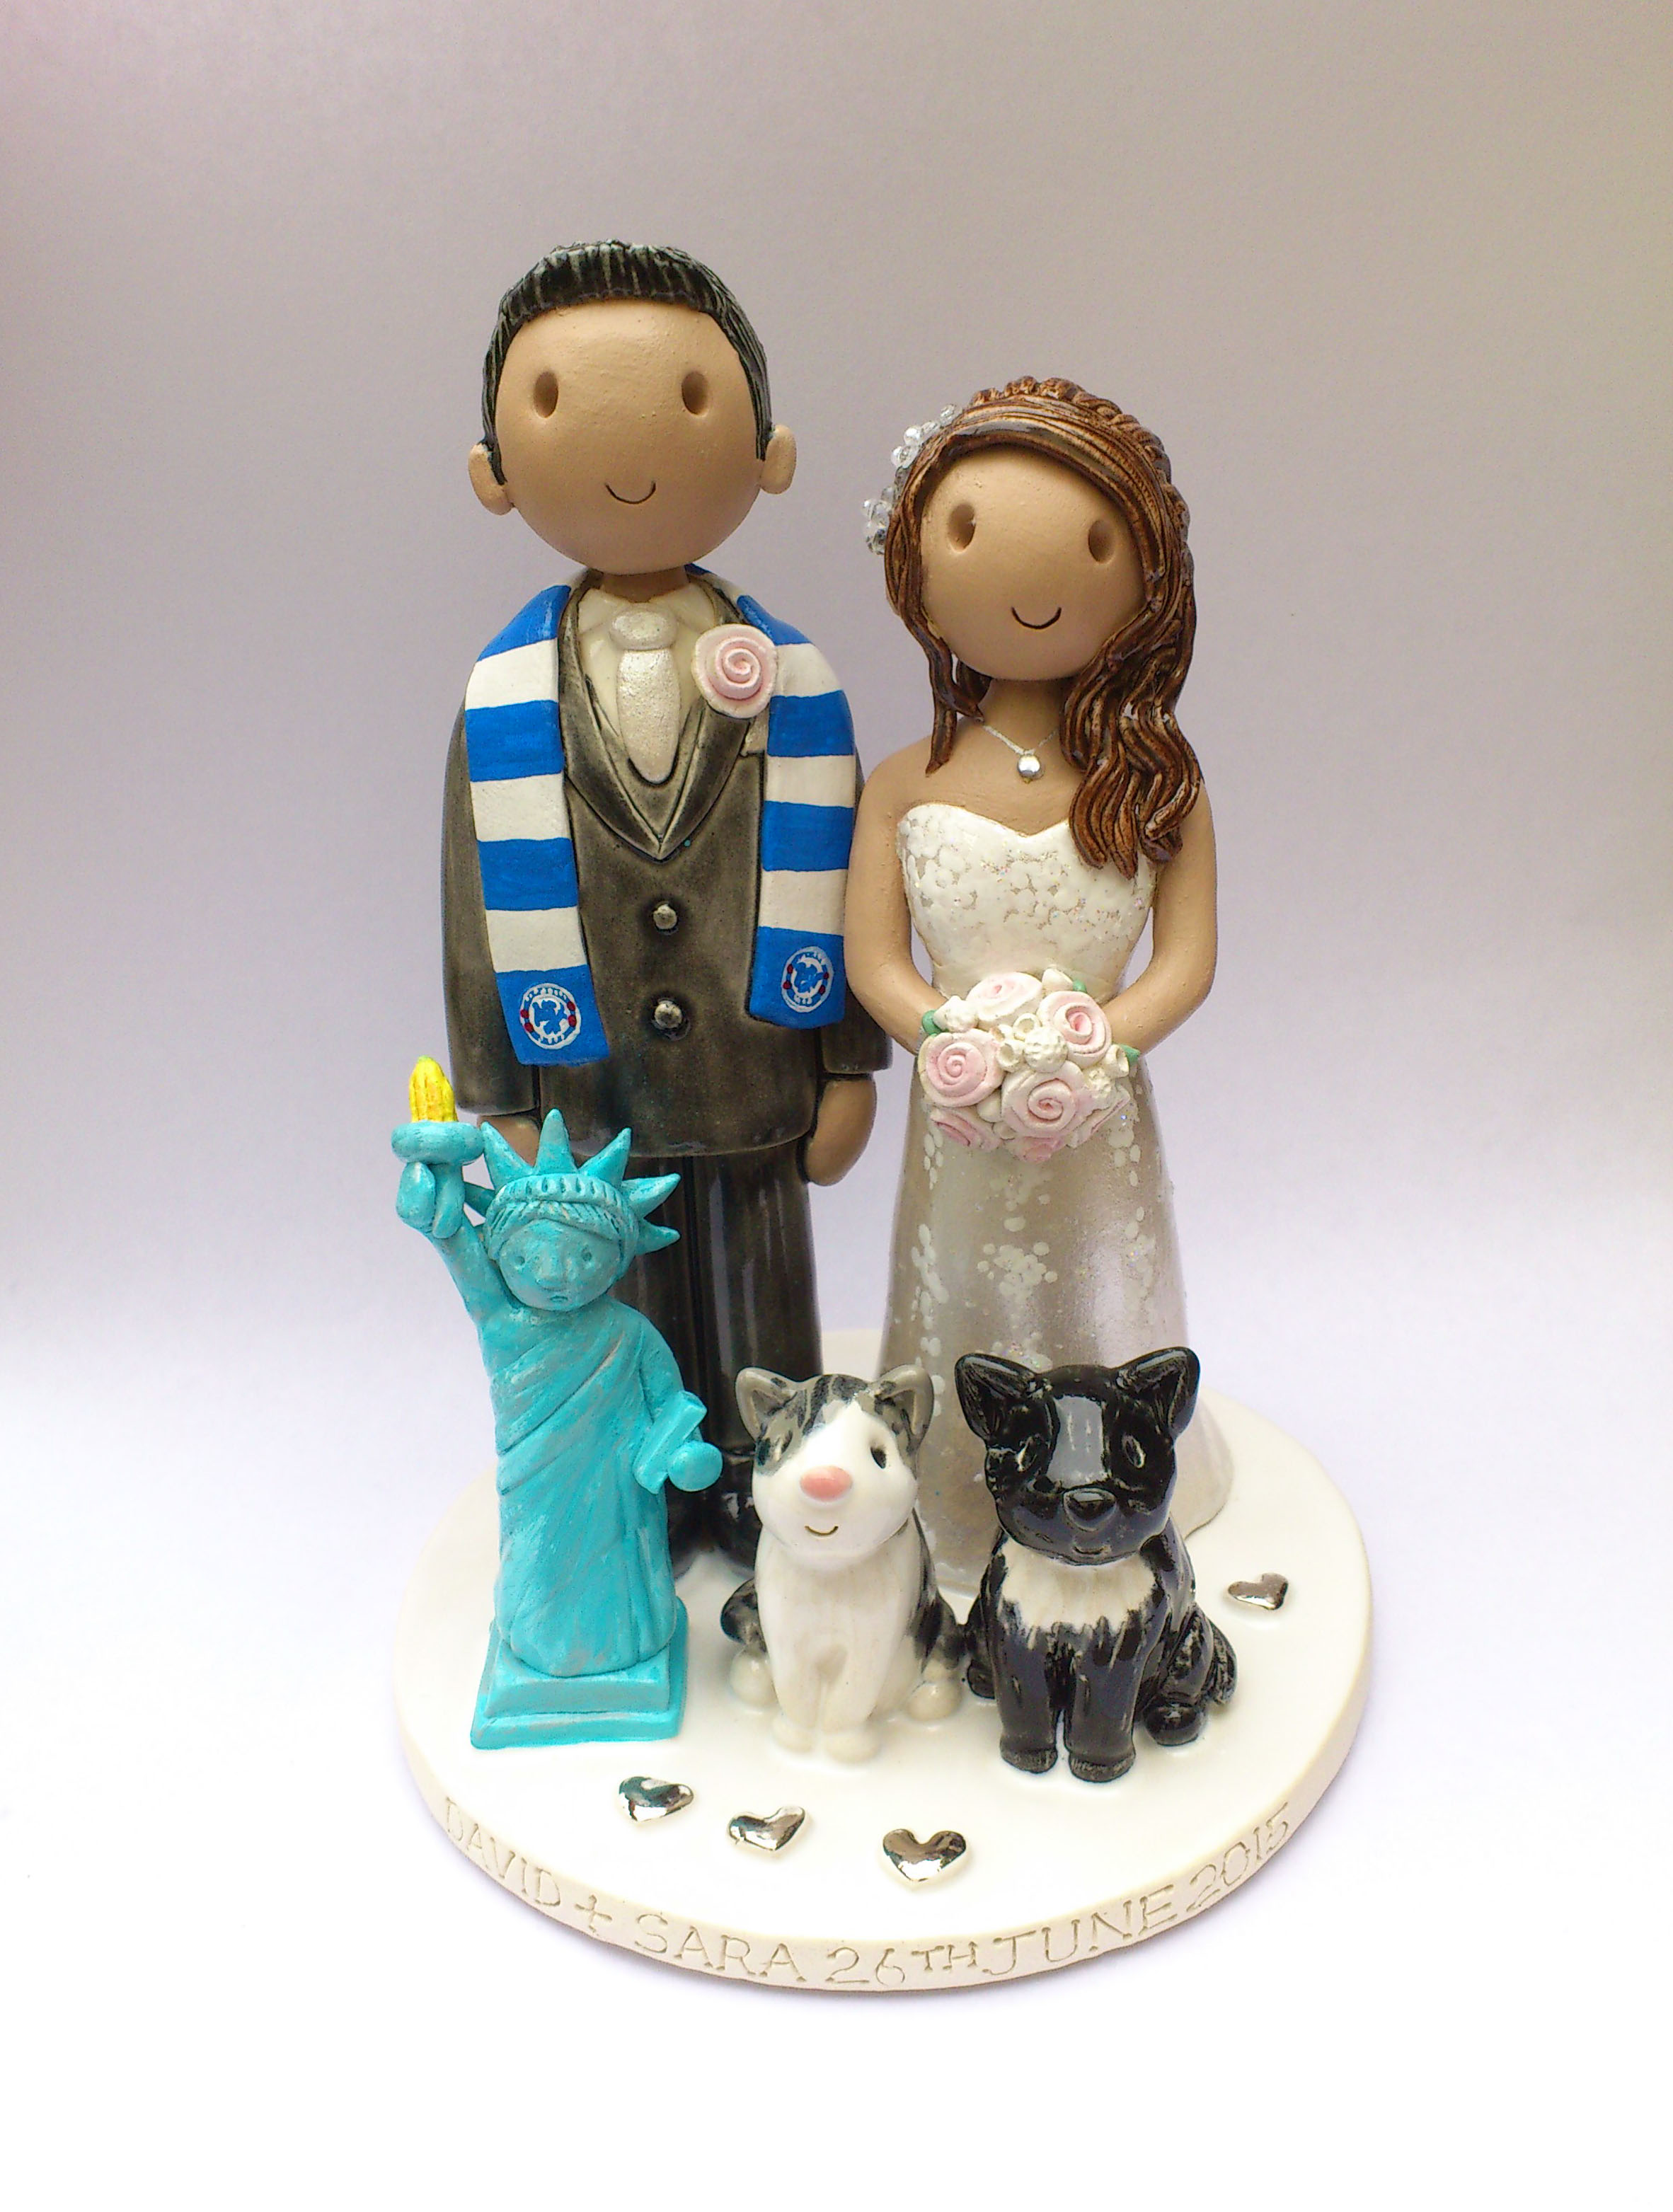 What Do You Call The Statue On Wedding Cake